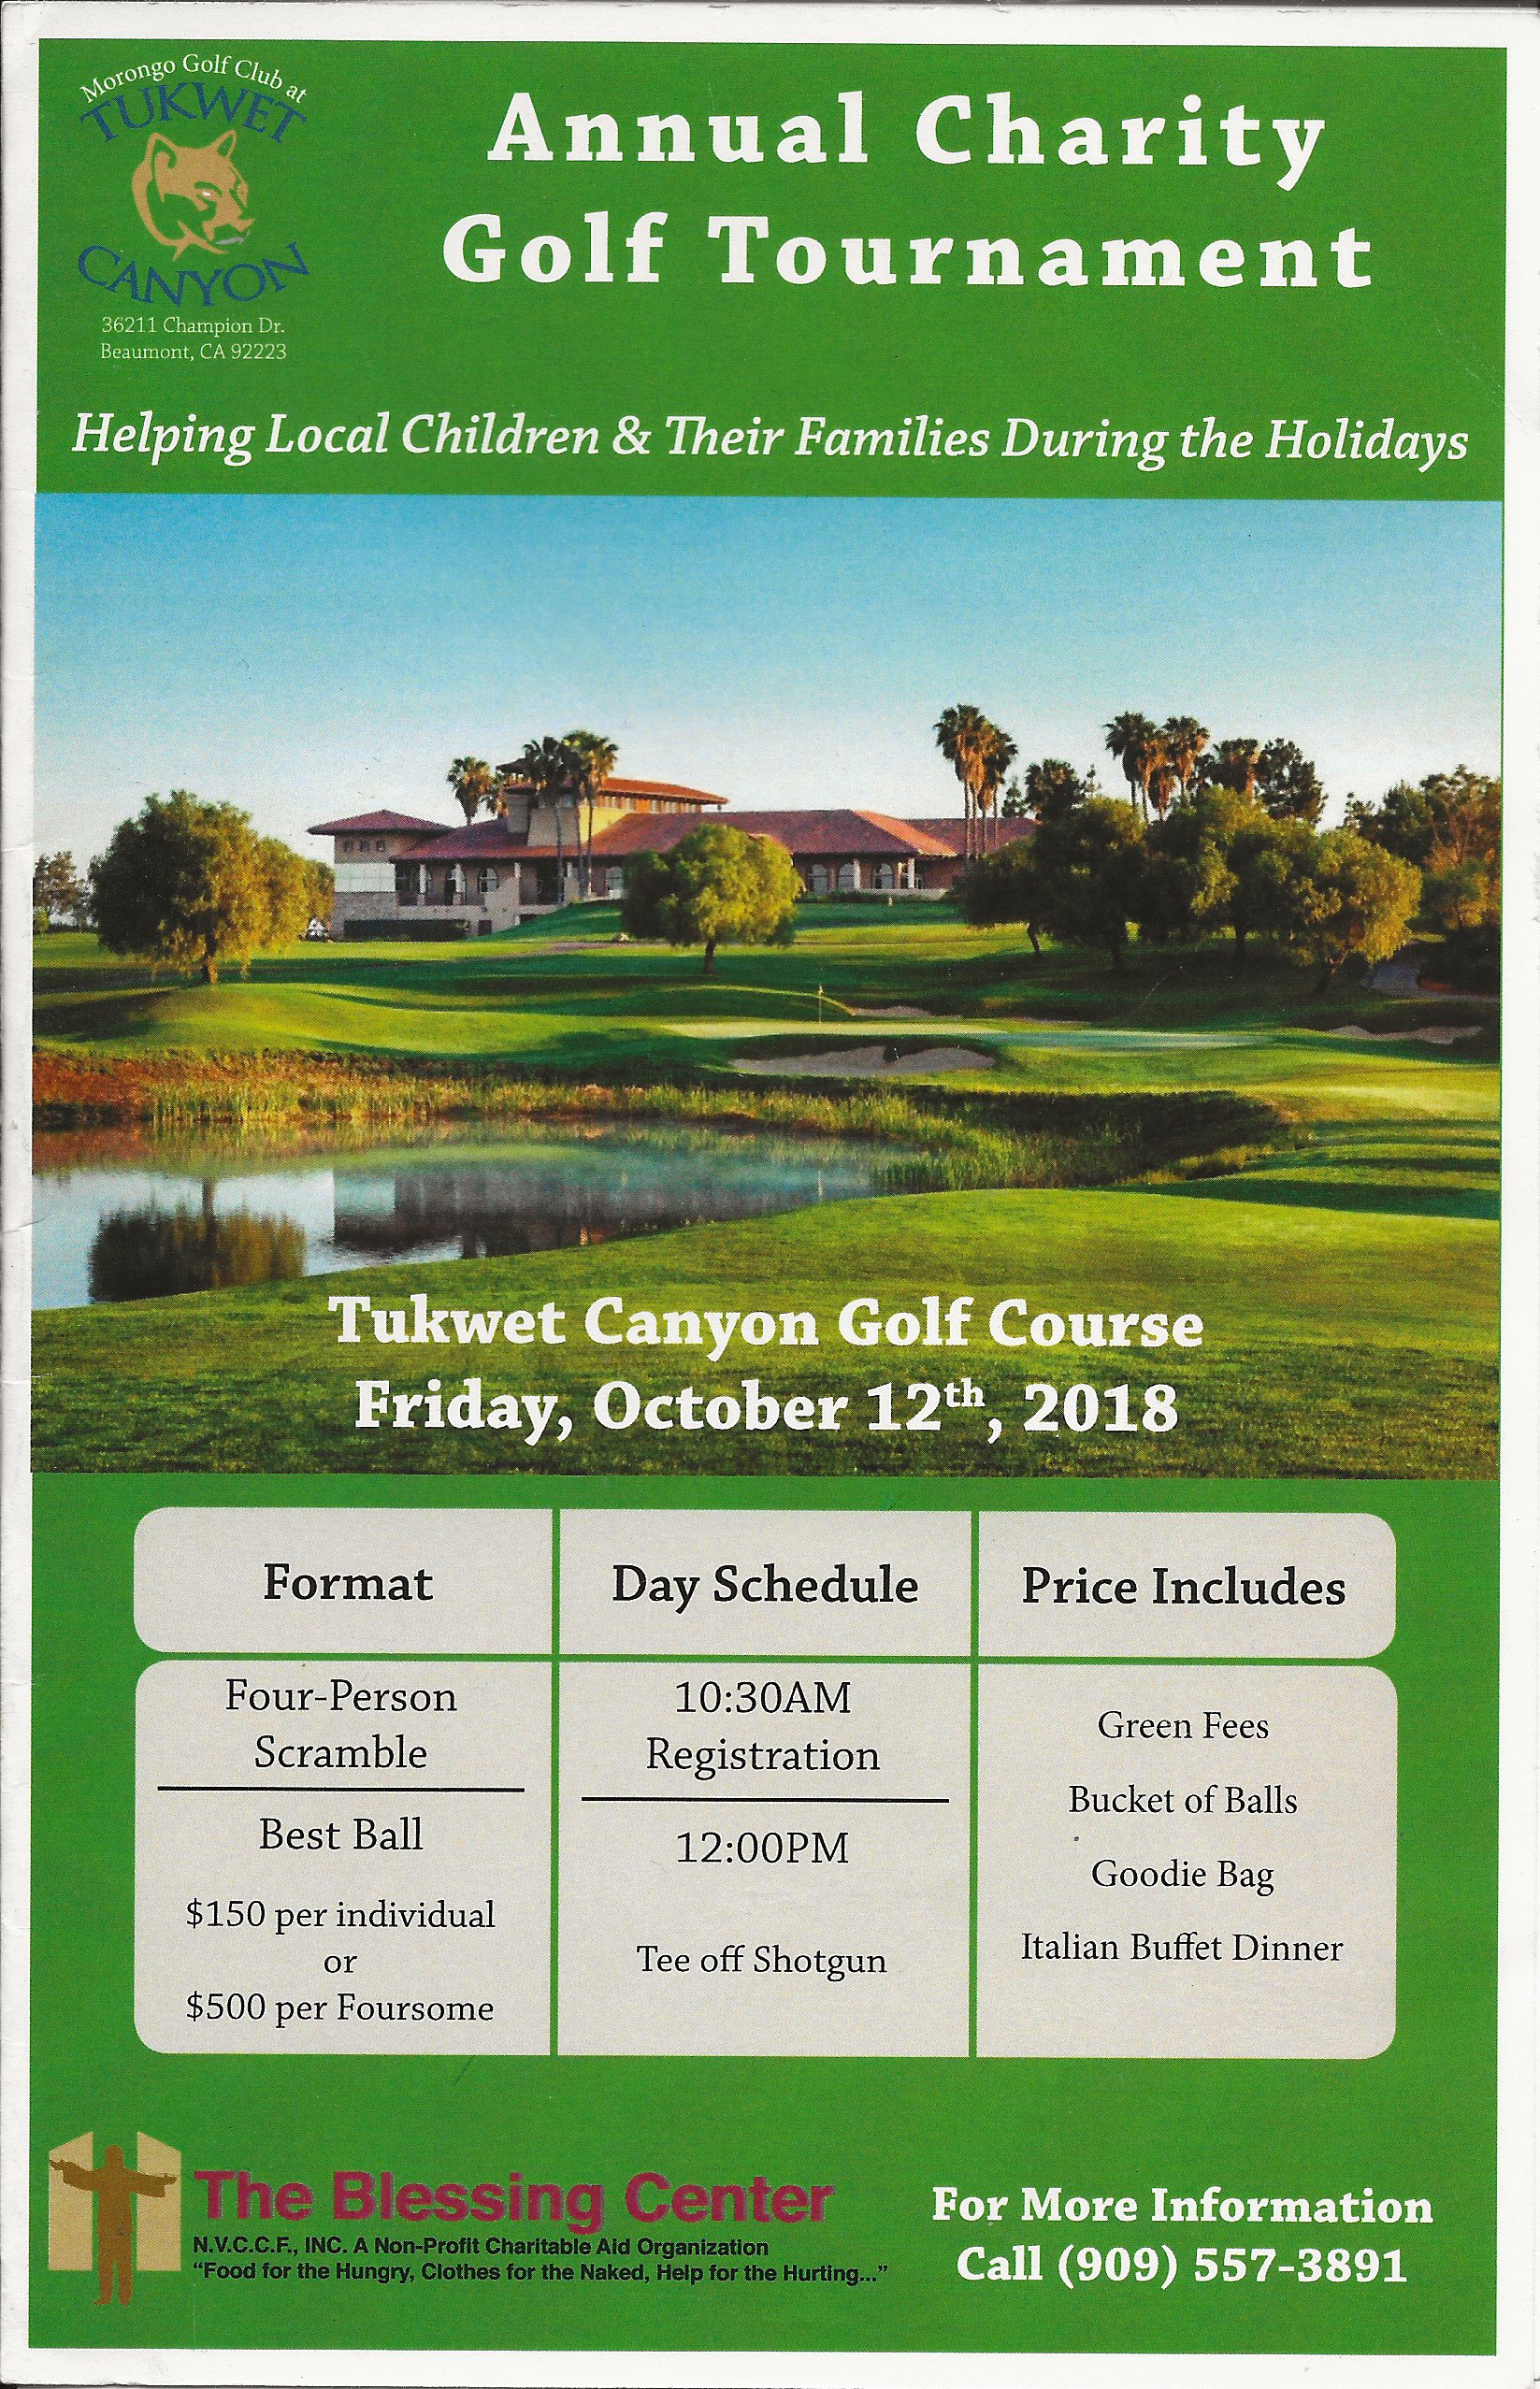 Annual Charity Golf Tournament Information